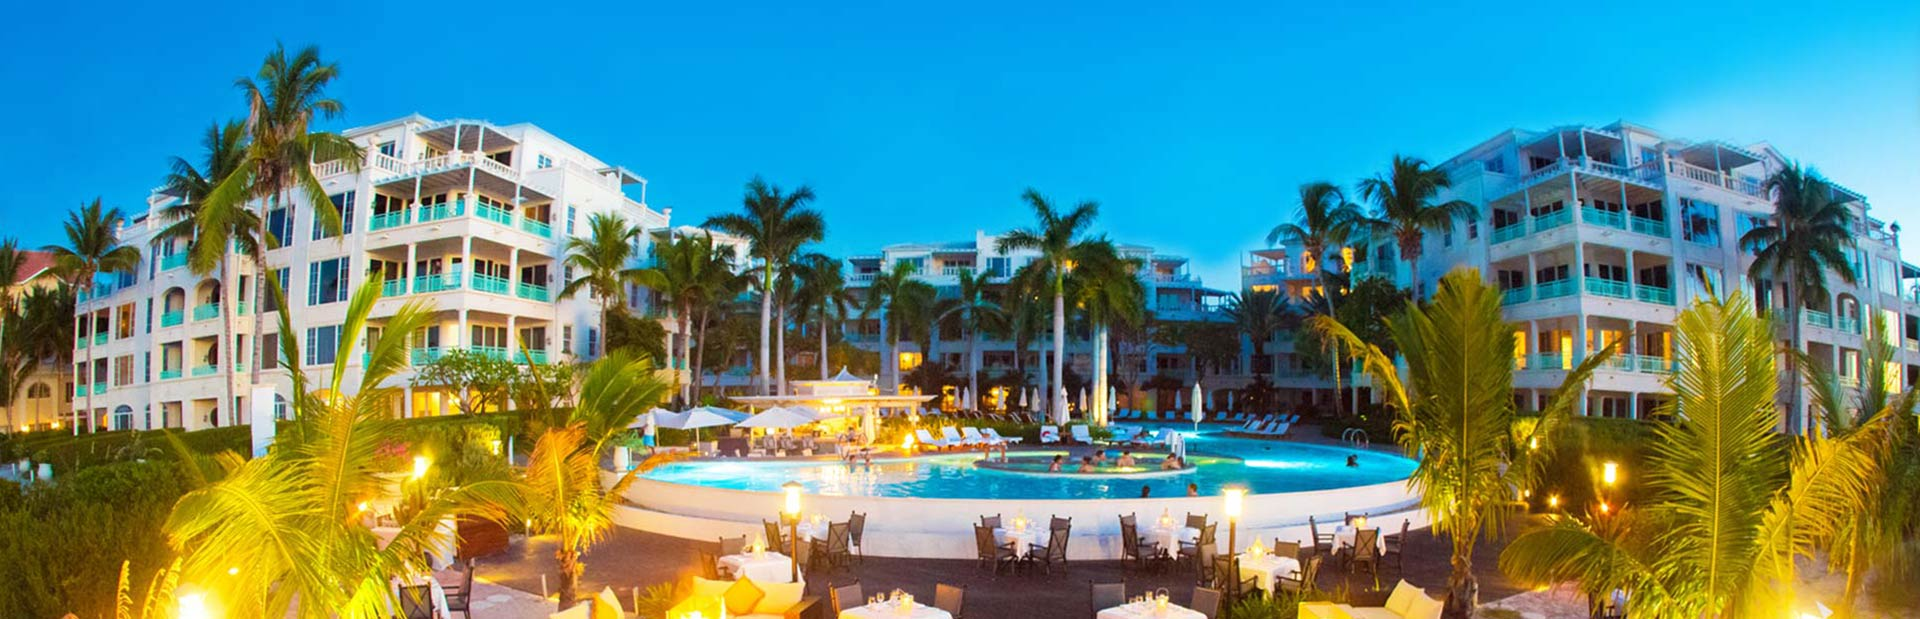 Indulge the tastiest libations at the poolside or beachside pool at The Palms Turks & Caicos.